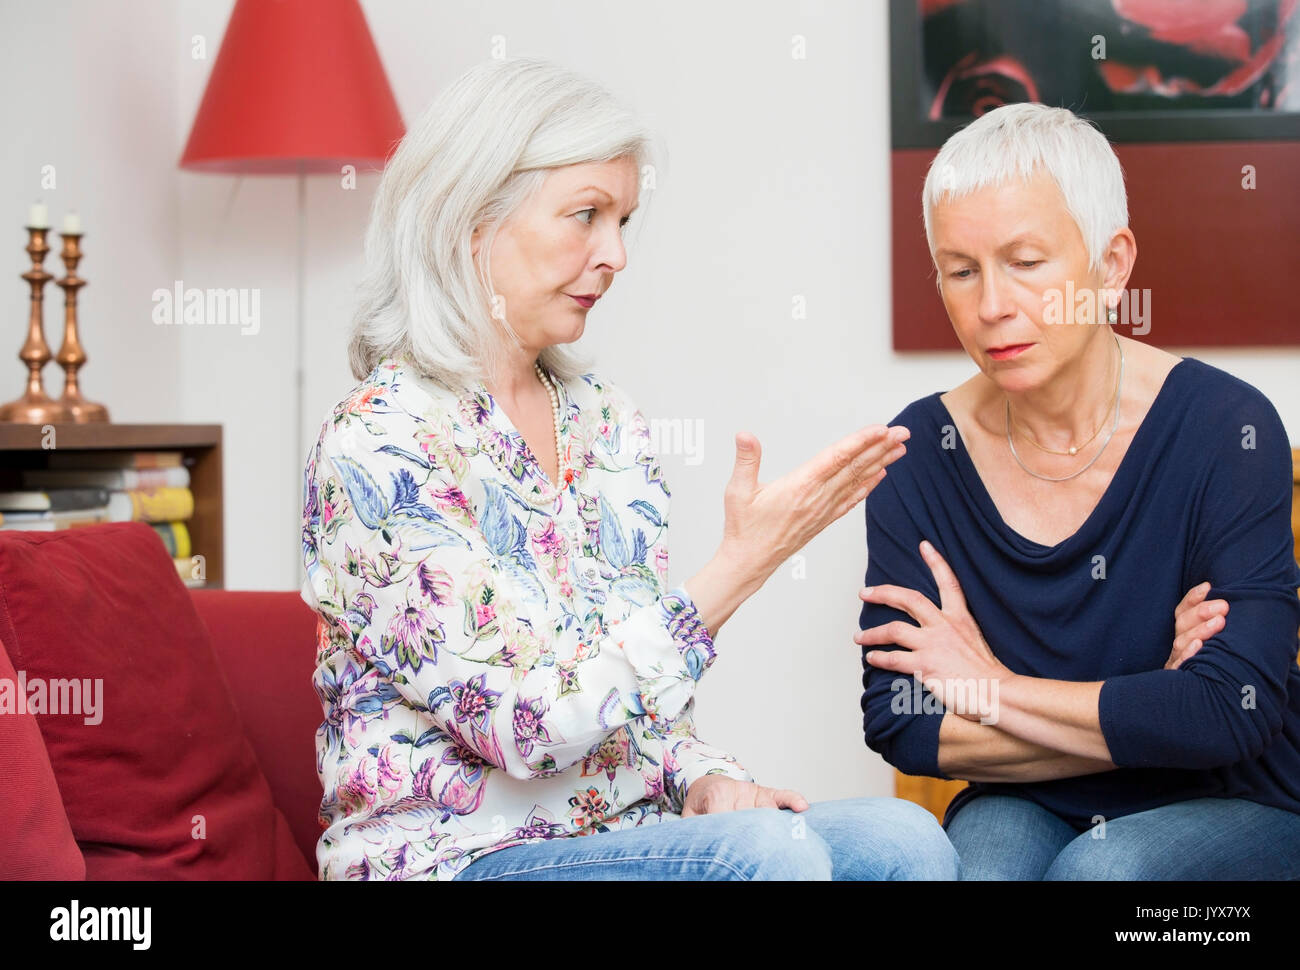 Two older woman in a disputation - Stock Image